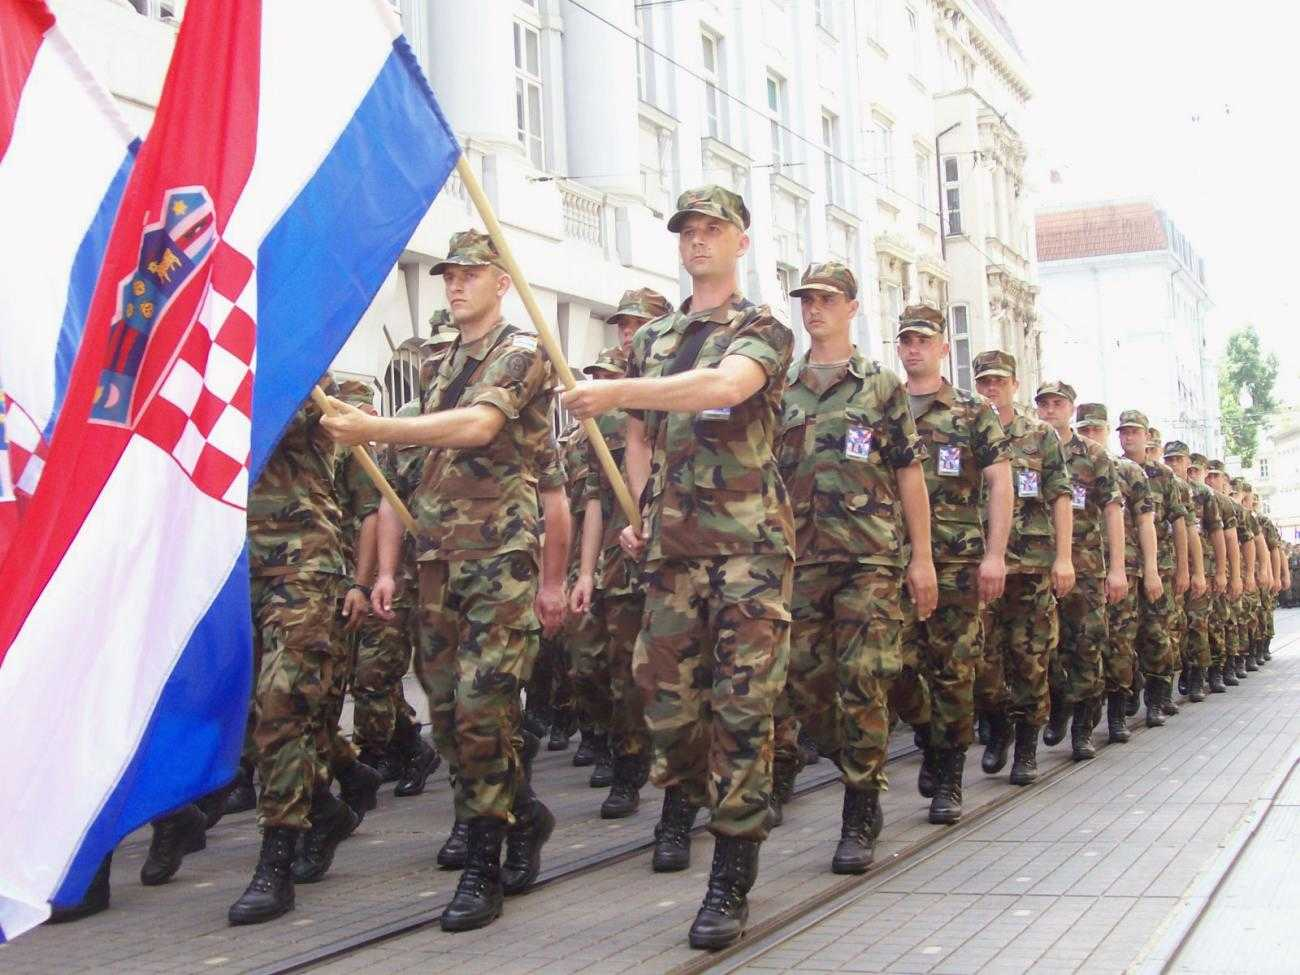 A military parade in Croatia